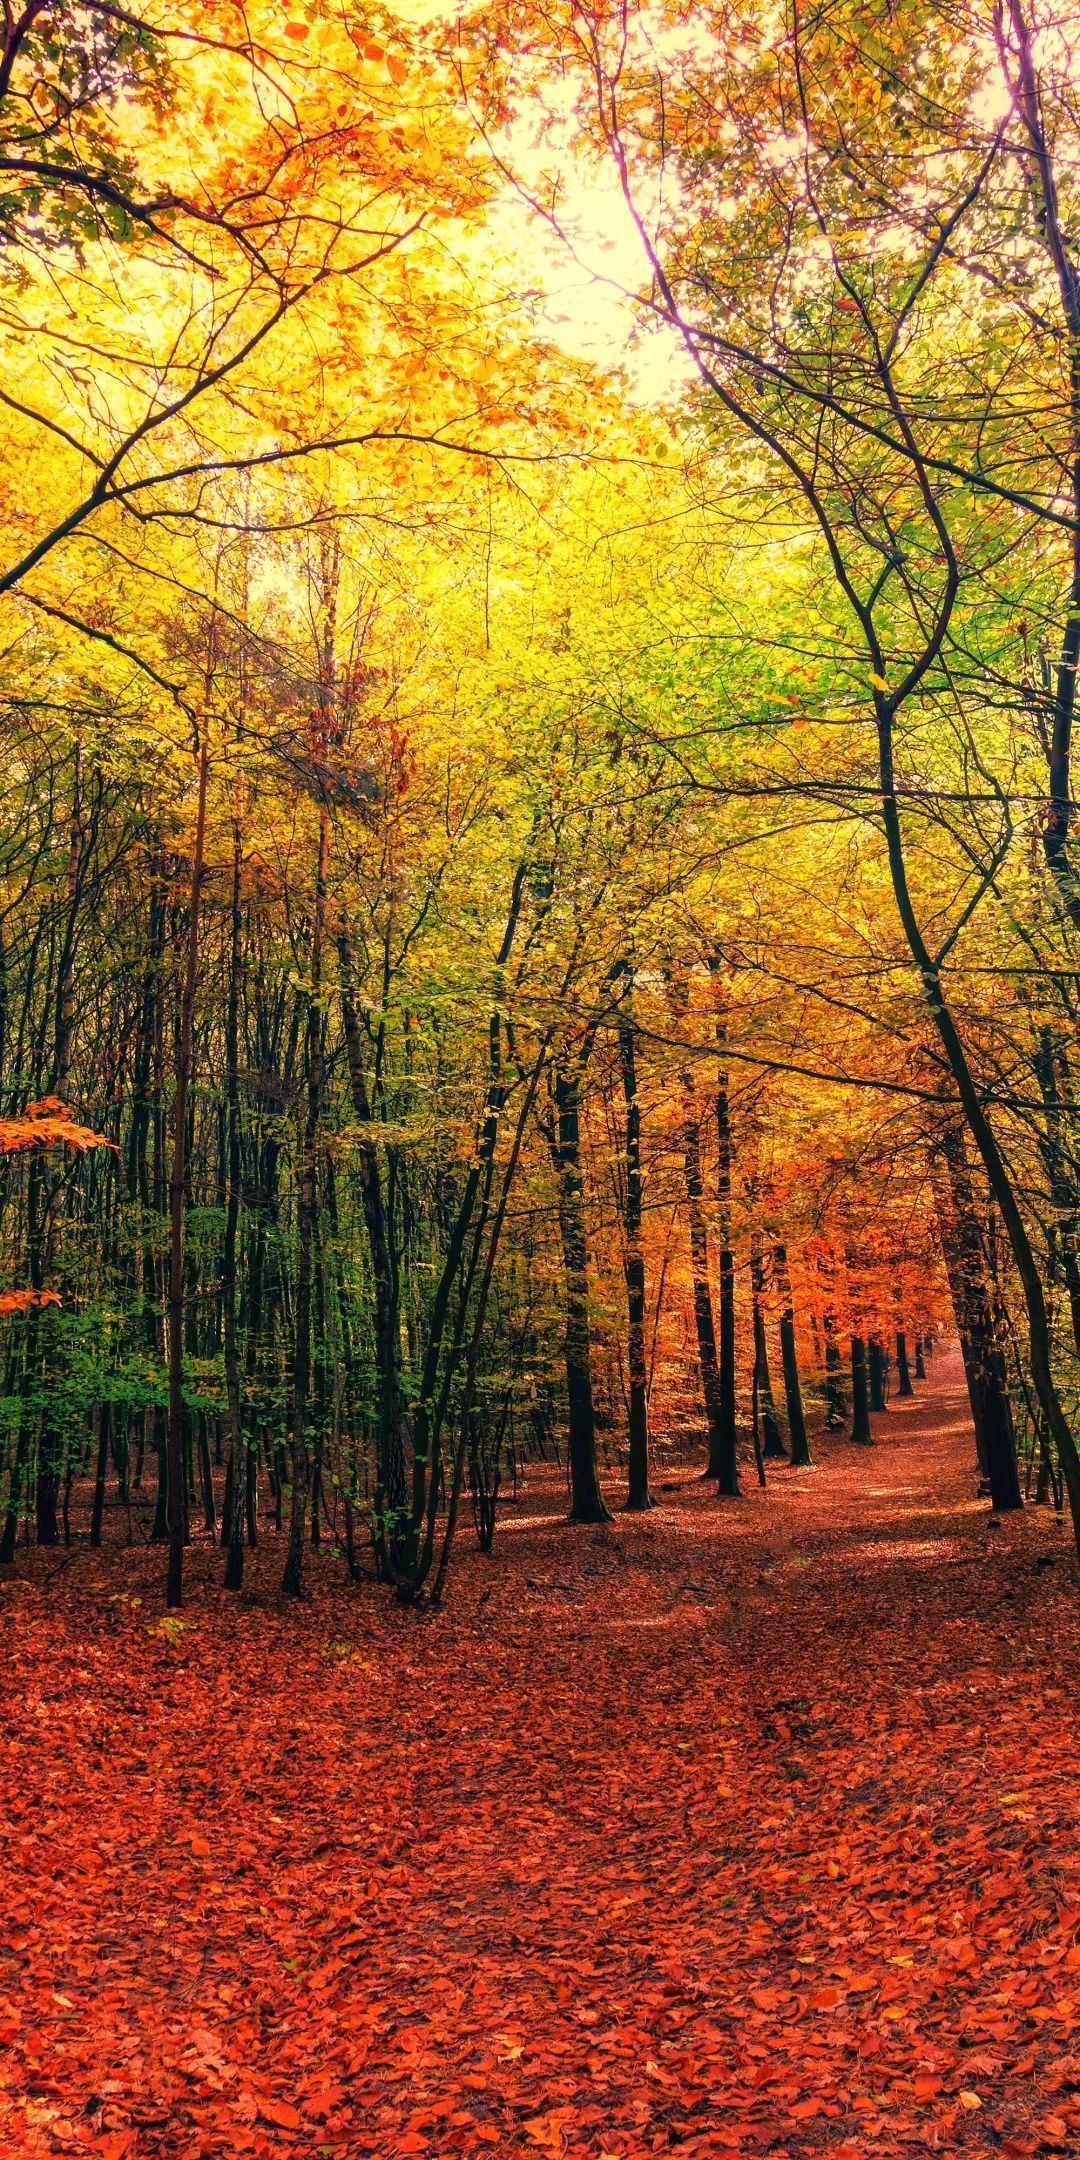 Autumn Leaves Fall Tree Forest Nature 1080x2160 Wallpaper Best Nature Wallpapers Nature Backgrounds Iphone Nature Wallpaper